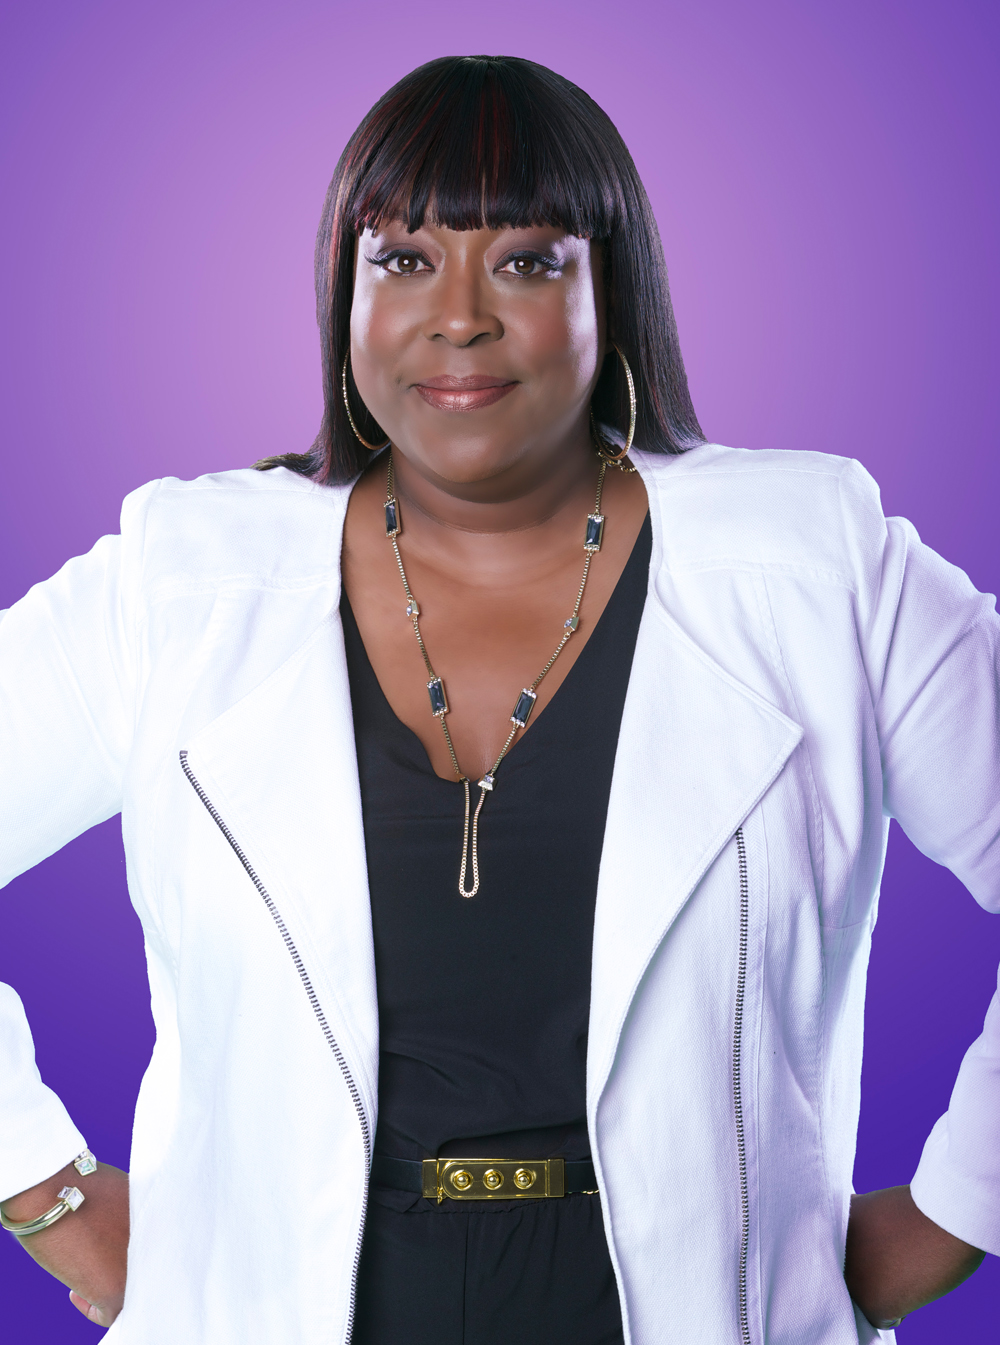 The Real's Loni Love to Host BFF Awards Ceremony ...